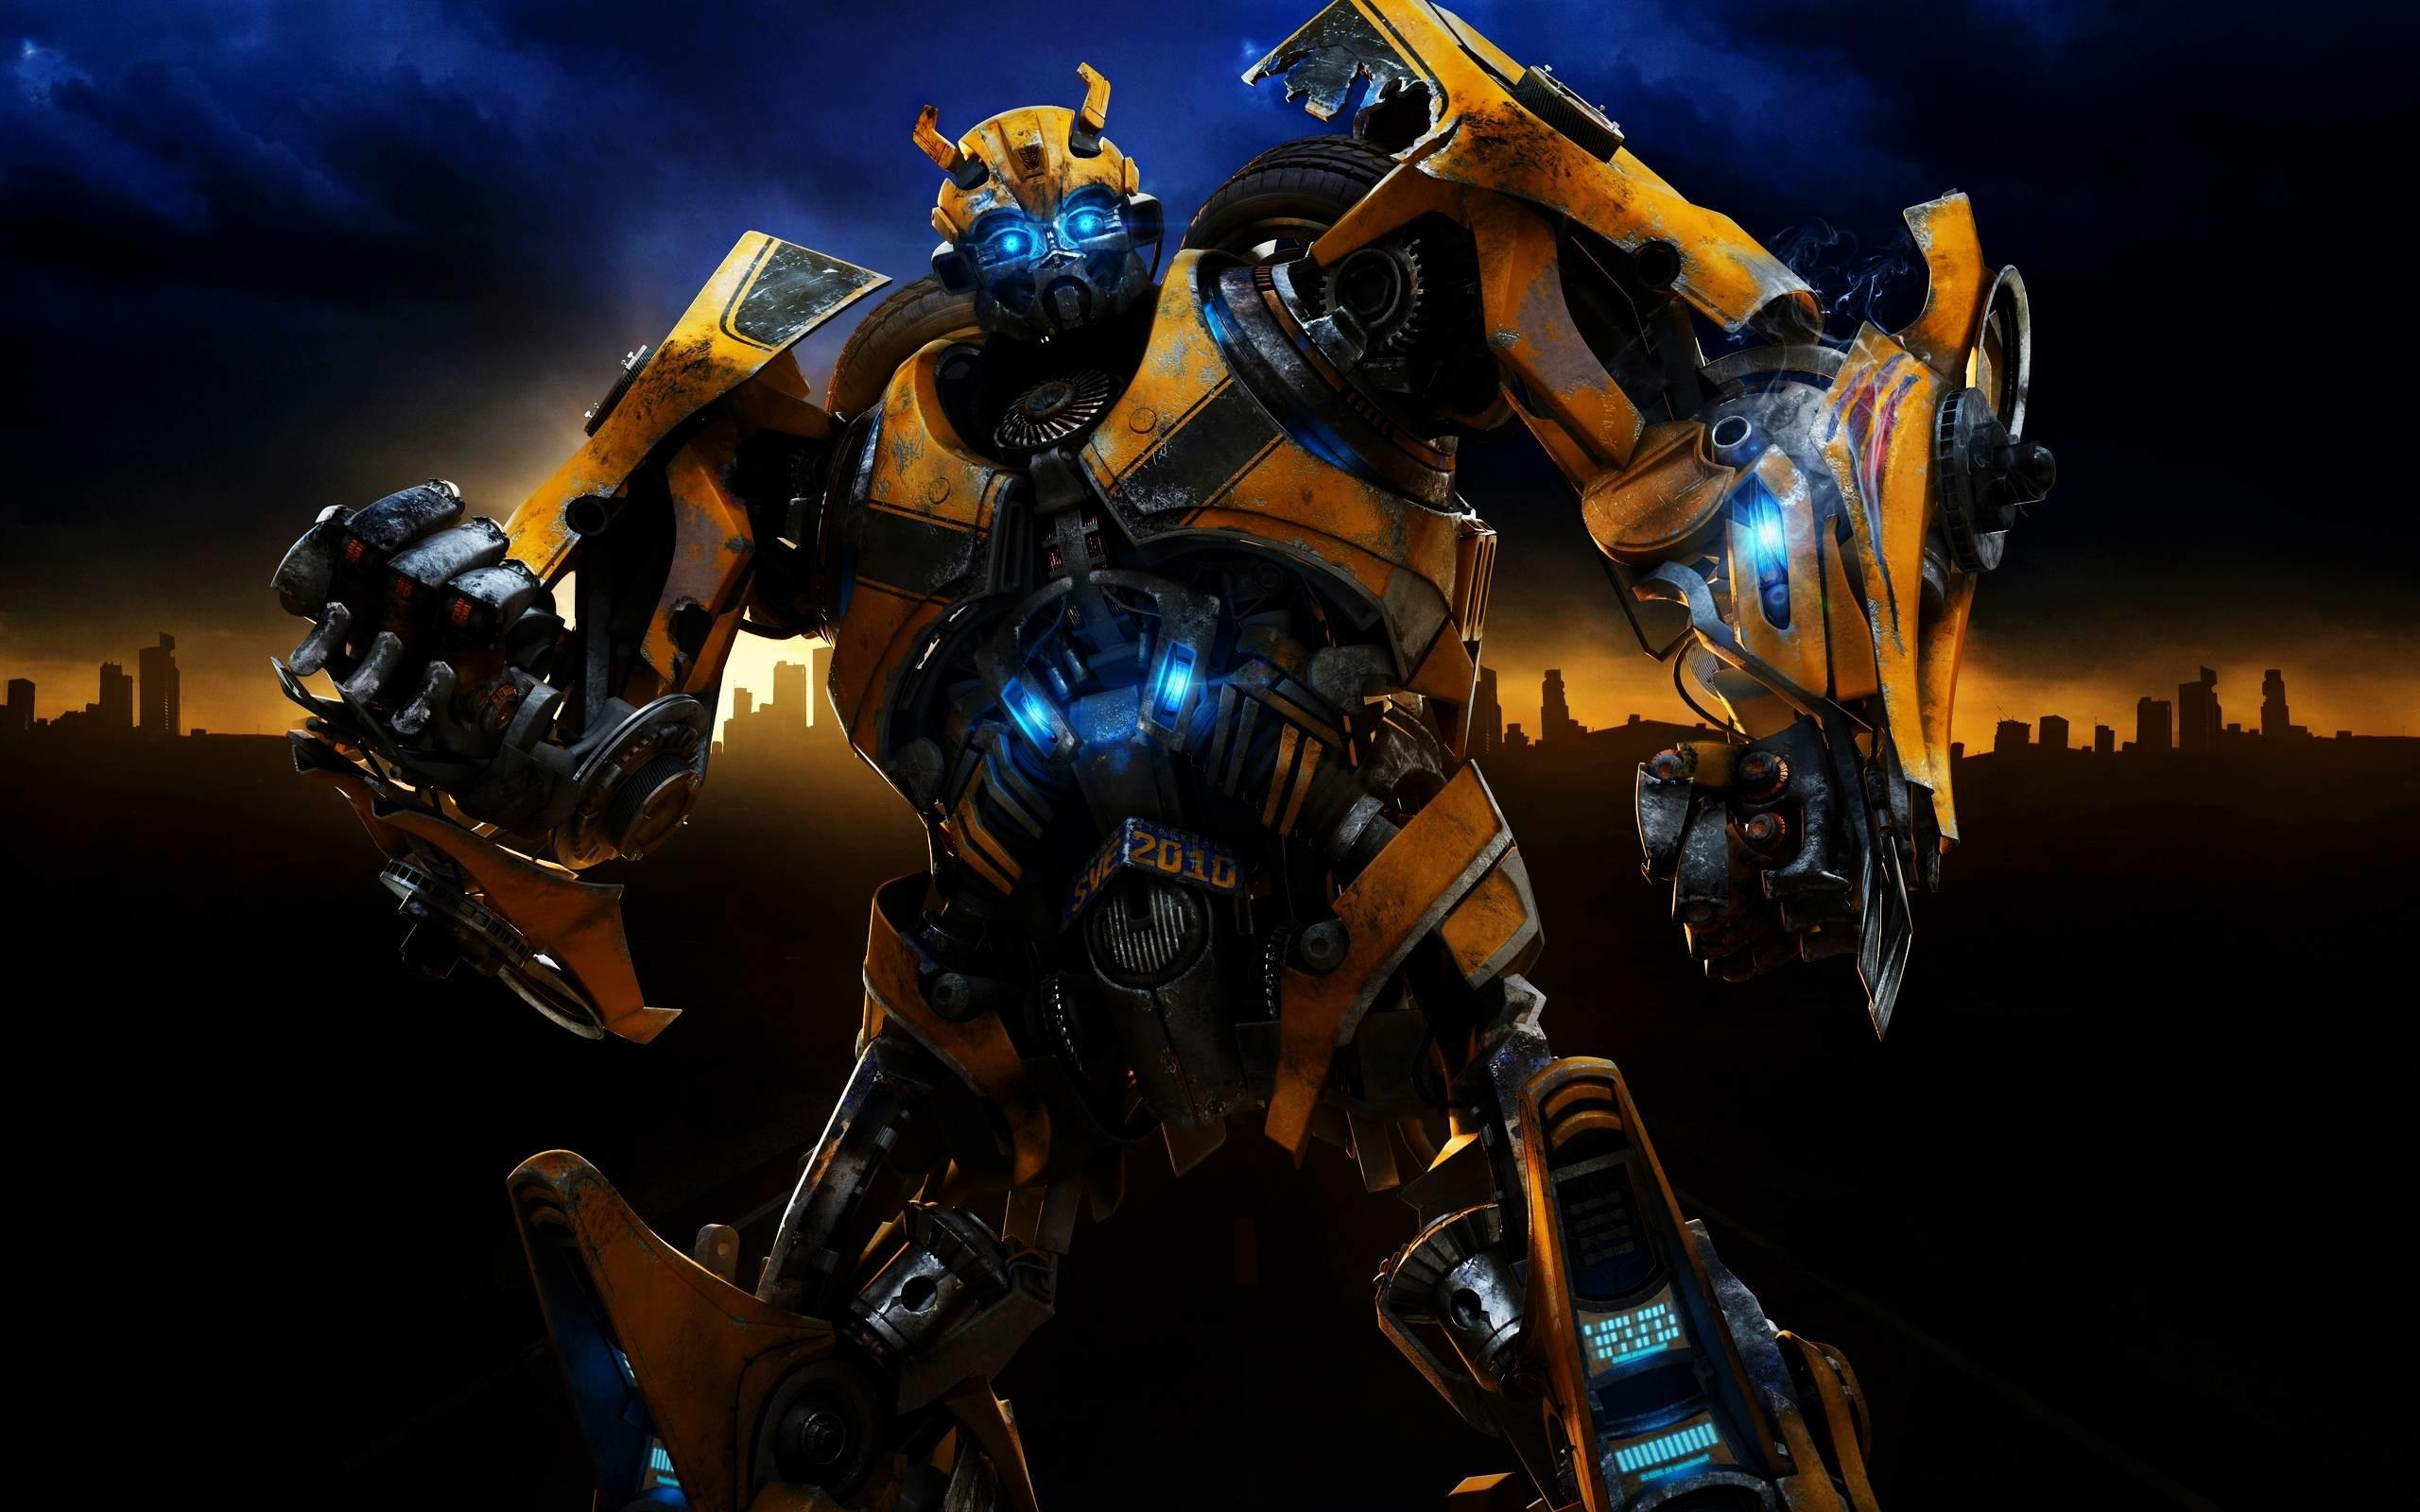 Transformers Movie HD Desktop Wallpaper for K Ultra